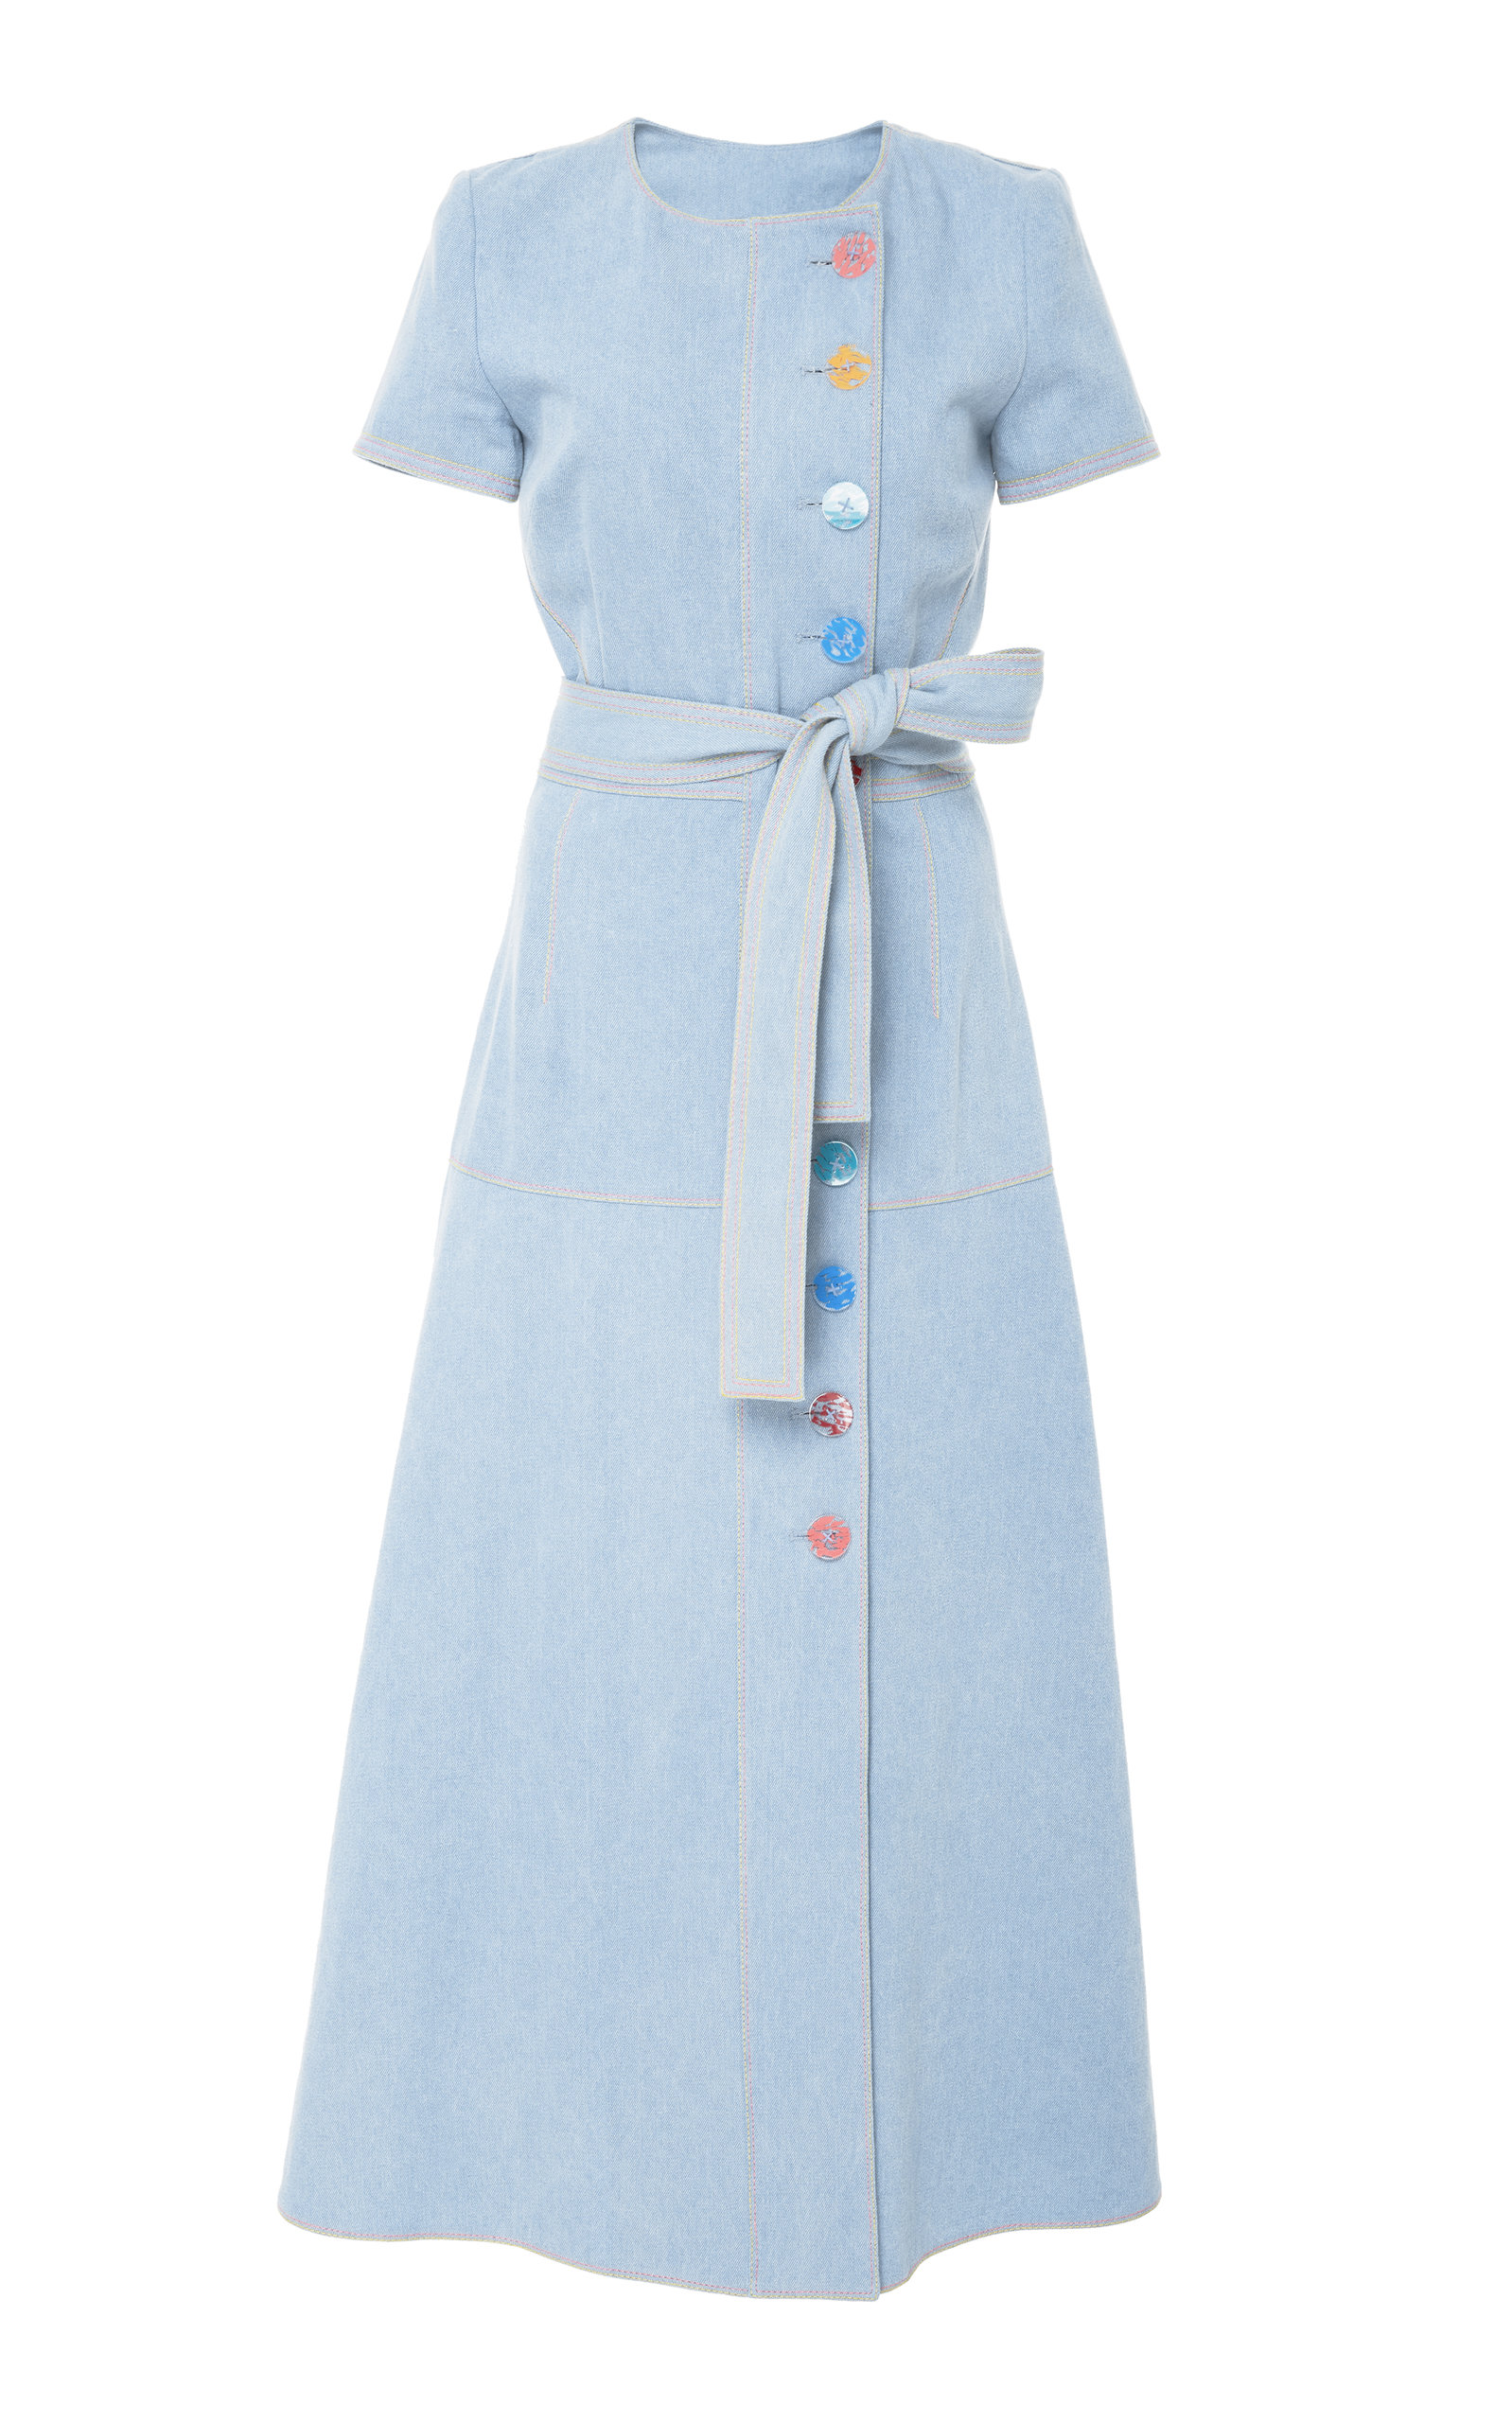 dd5701f2db Short Sleeve Denim Dress by Carolina Herrera | Moda Operandi